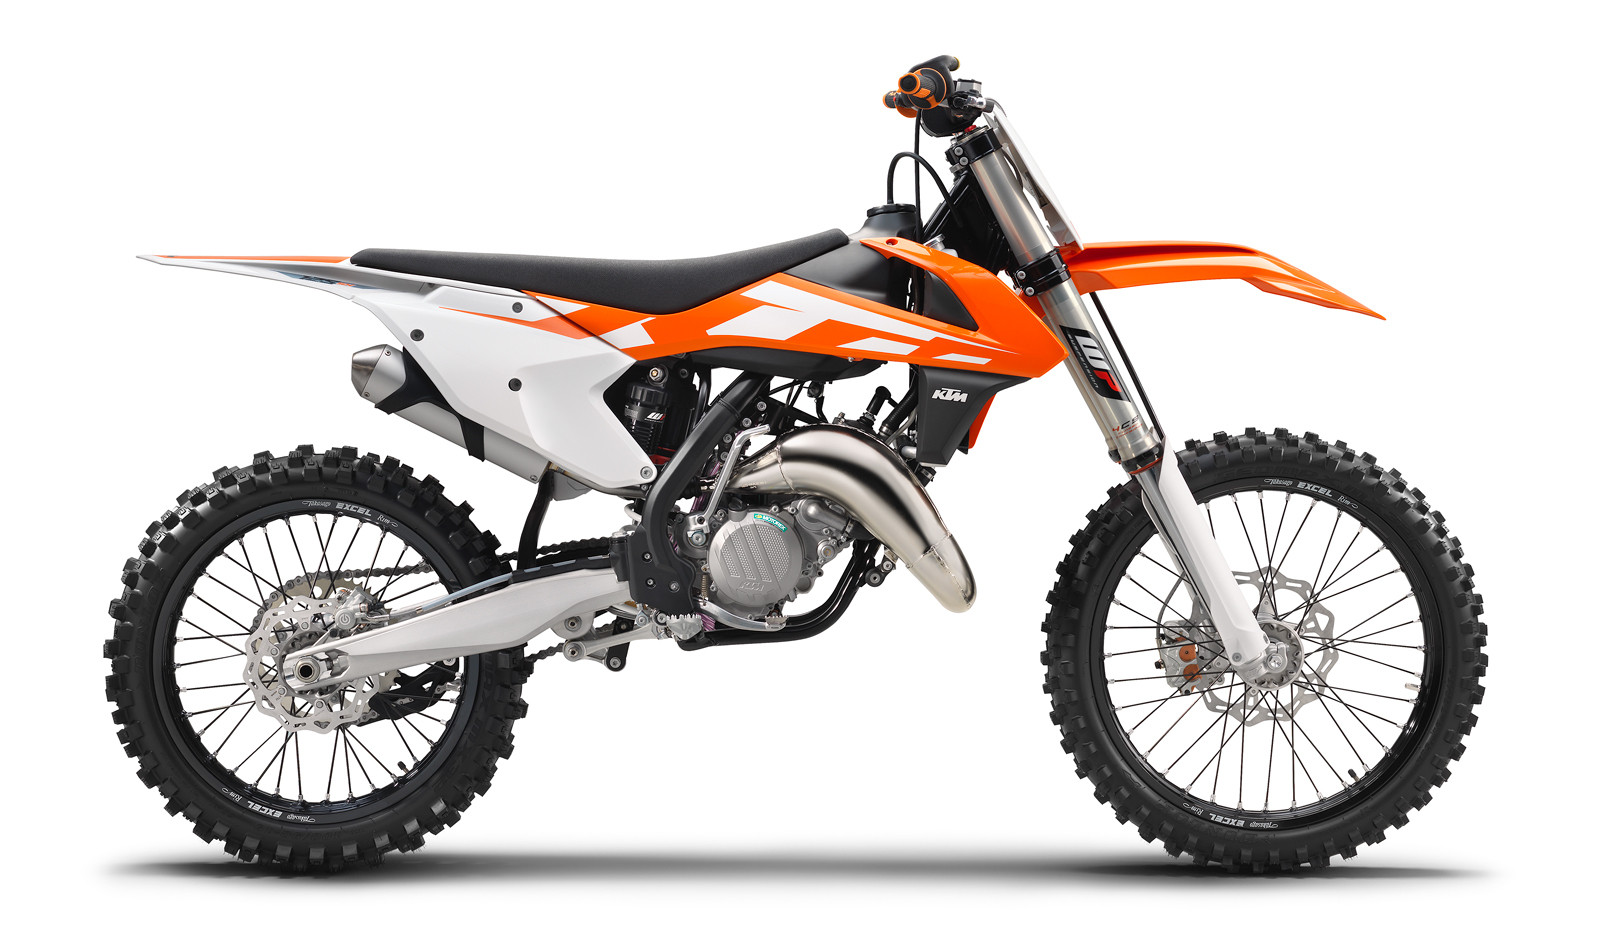 2016 ktm 125 sx first look 2016 u s ktm sx models motocross pictures vital mx. Black Bedroom Furniture Sets. Home Design Ideas